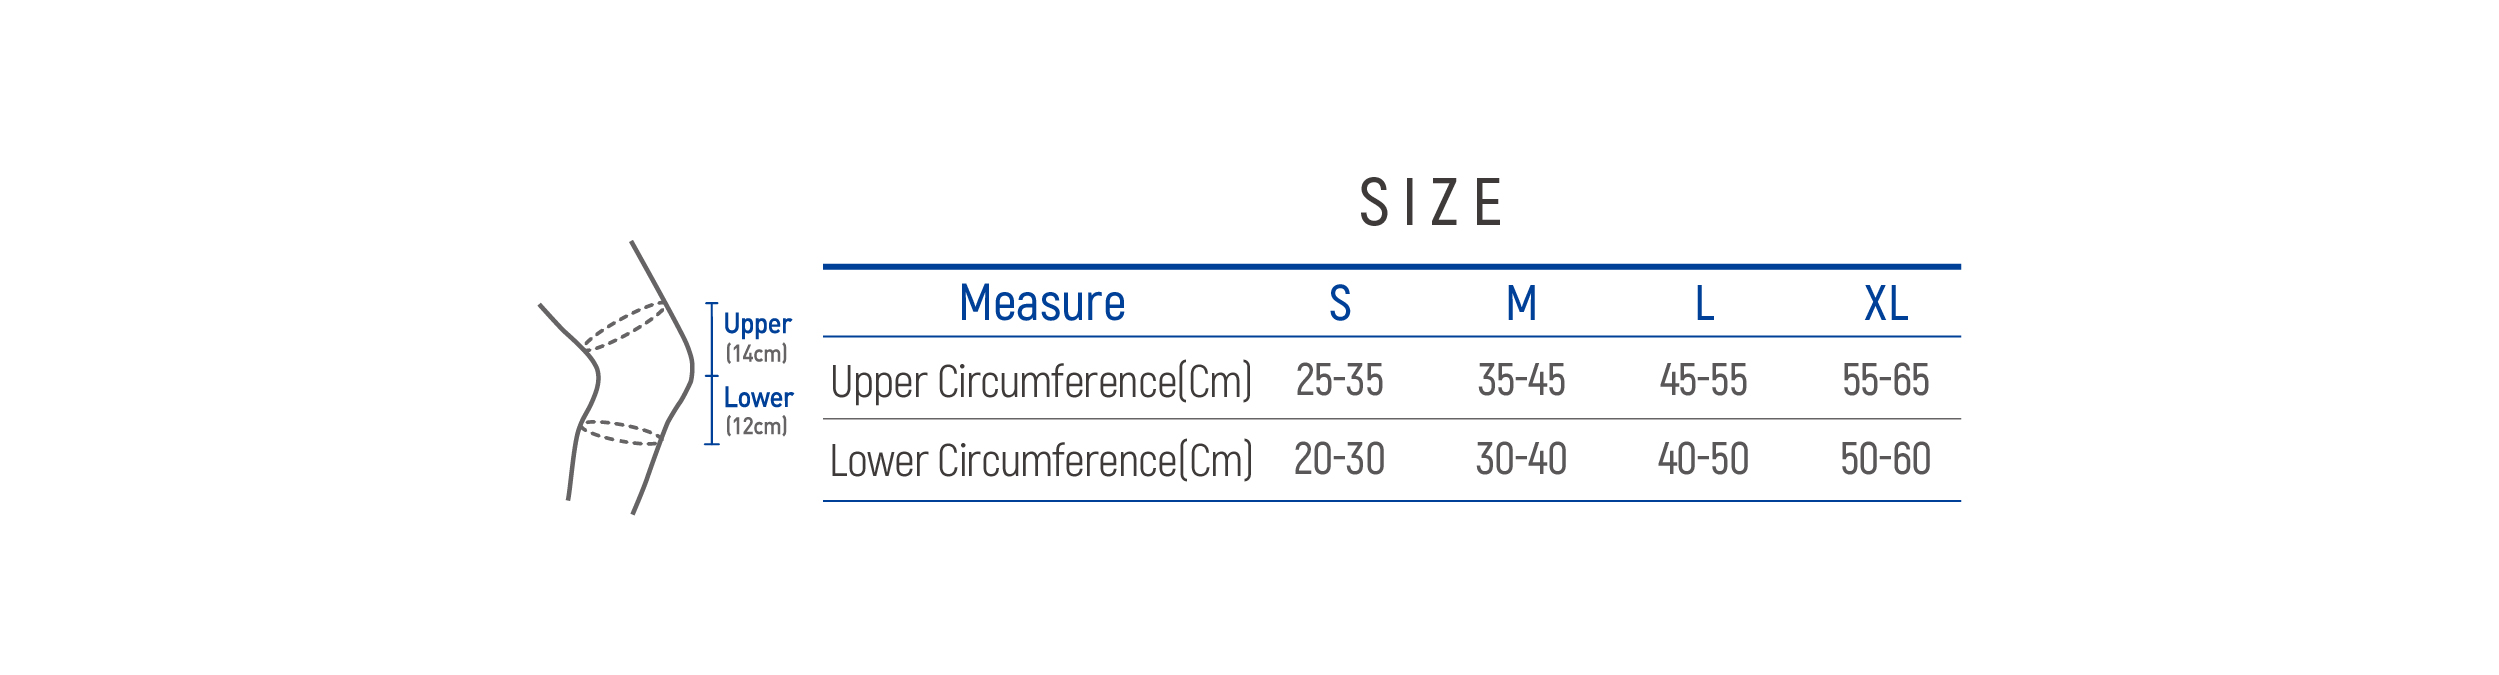 DR-K021 Size table image